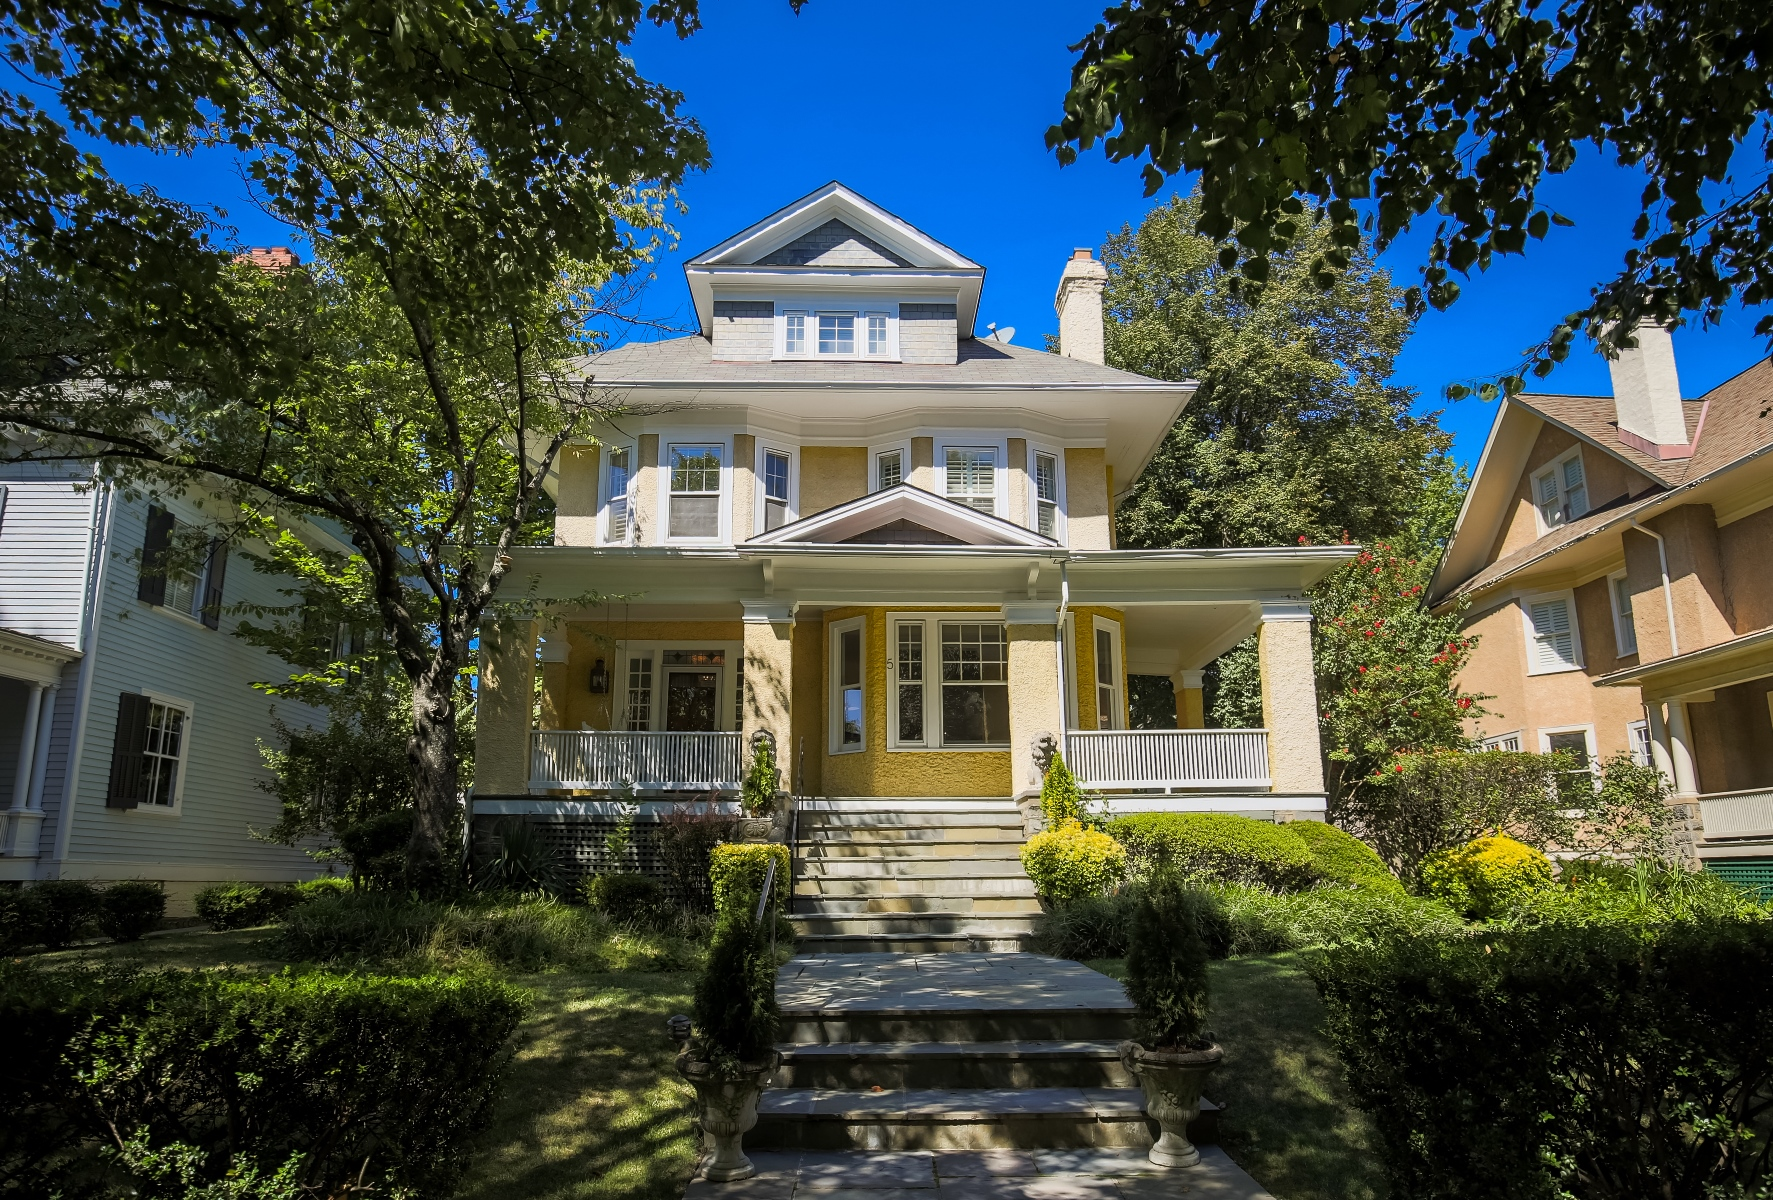 Additional photo for property listing at 5 Irving Street E, Chevy Chase  Chevy Chase, メリーランド 20815 アメリカ合衆国